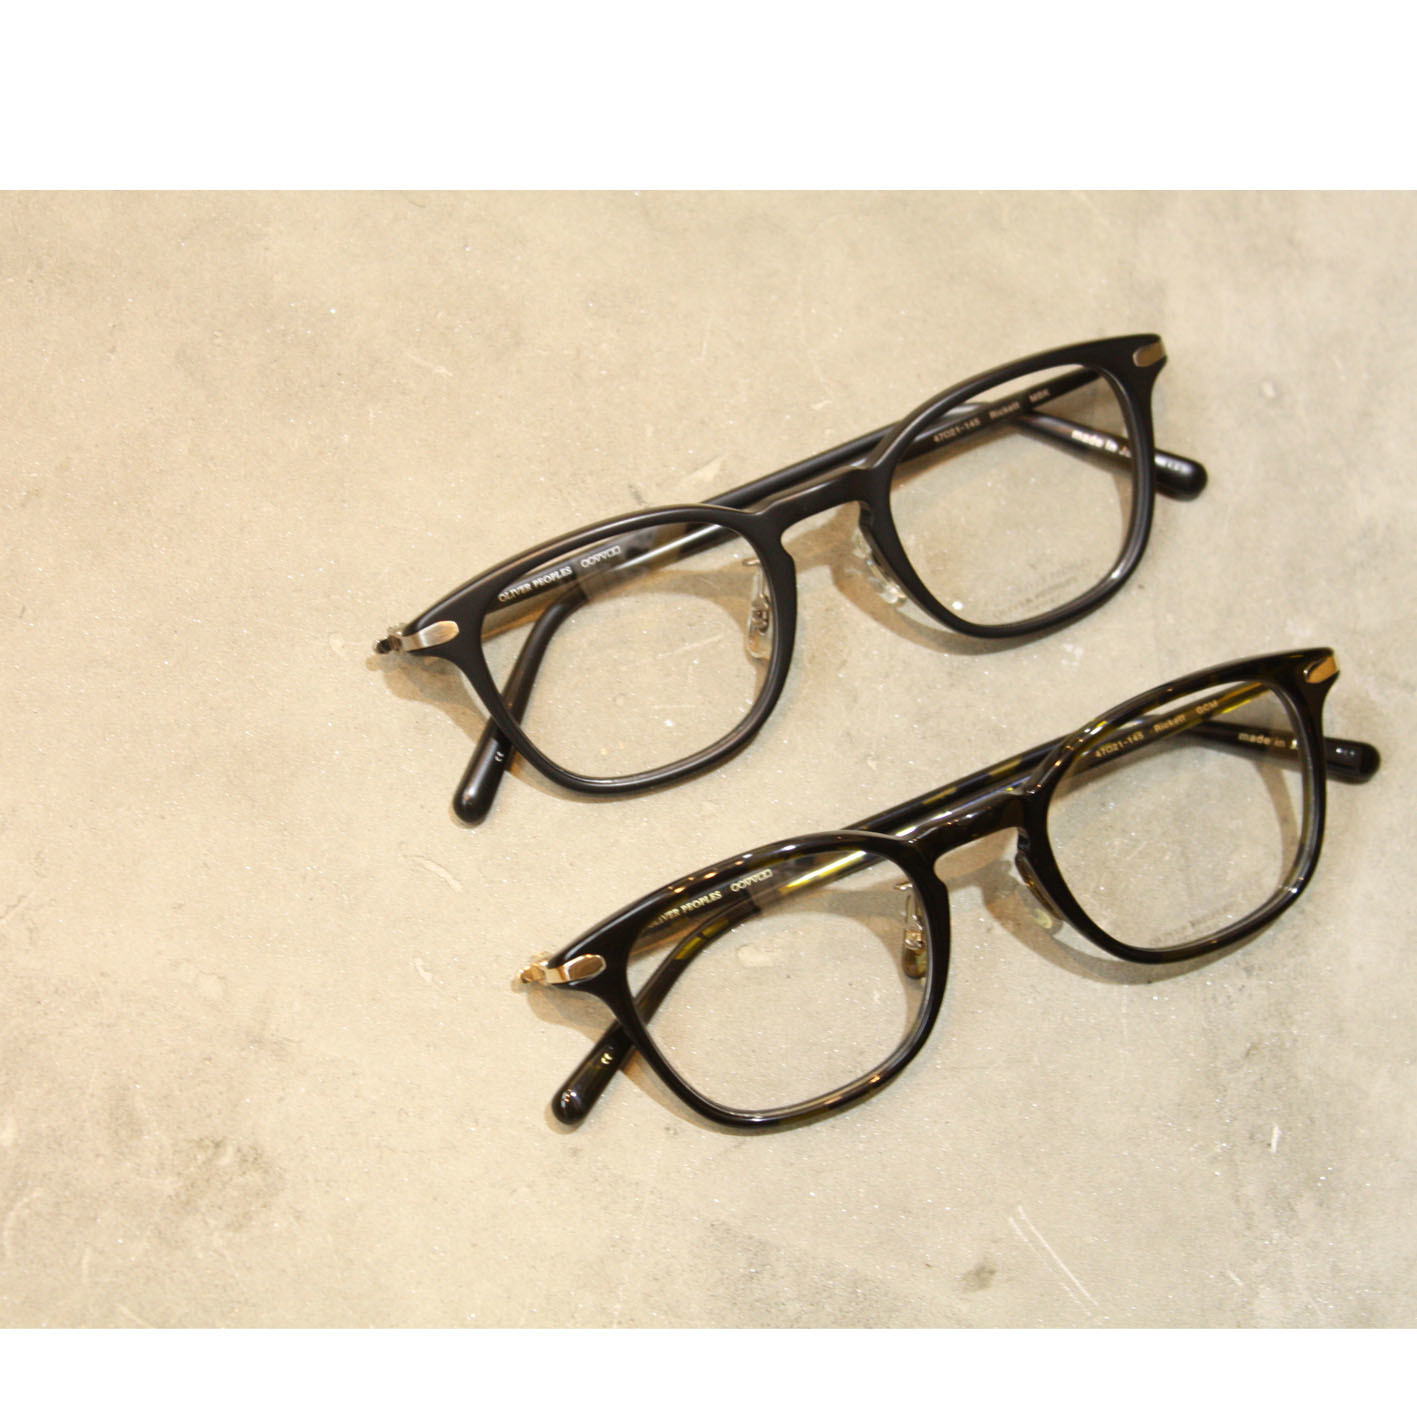 OLIVER PEOPLES 2016 NEW ARRIVAL_f0208675_22054361.jpg